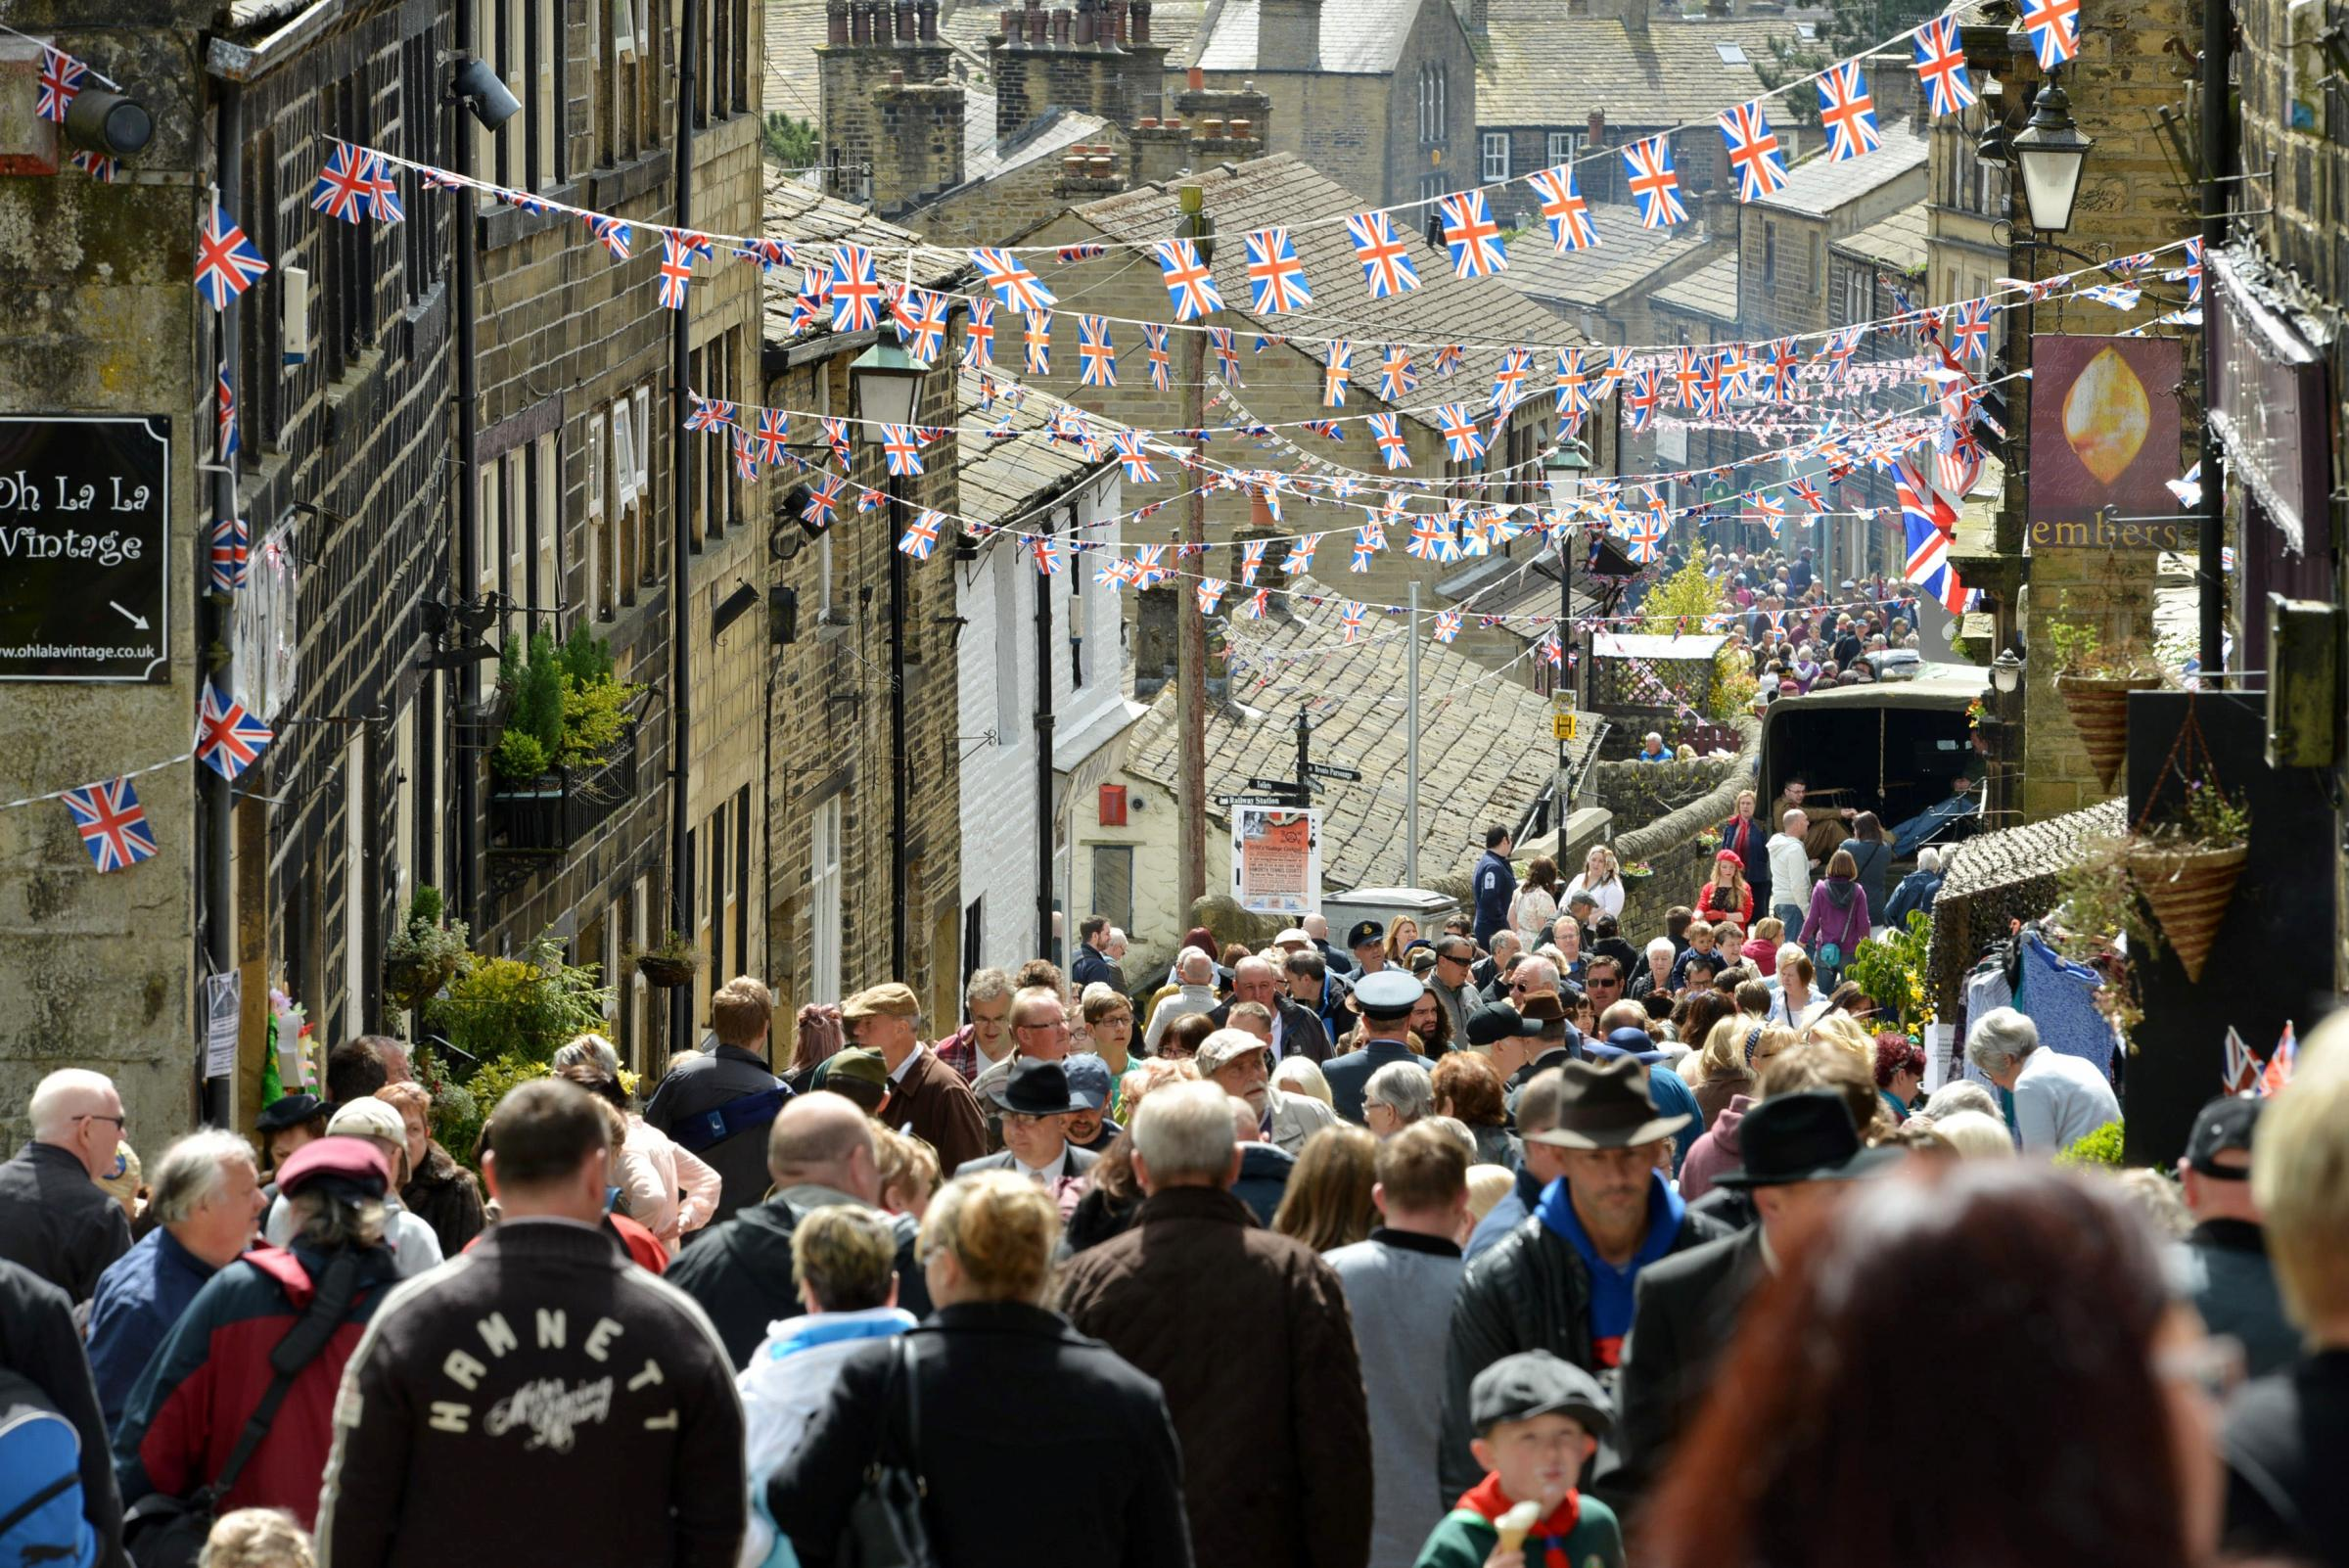 A packed Haworth Main Street during a previous 1940s Weekend